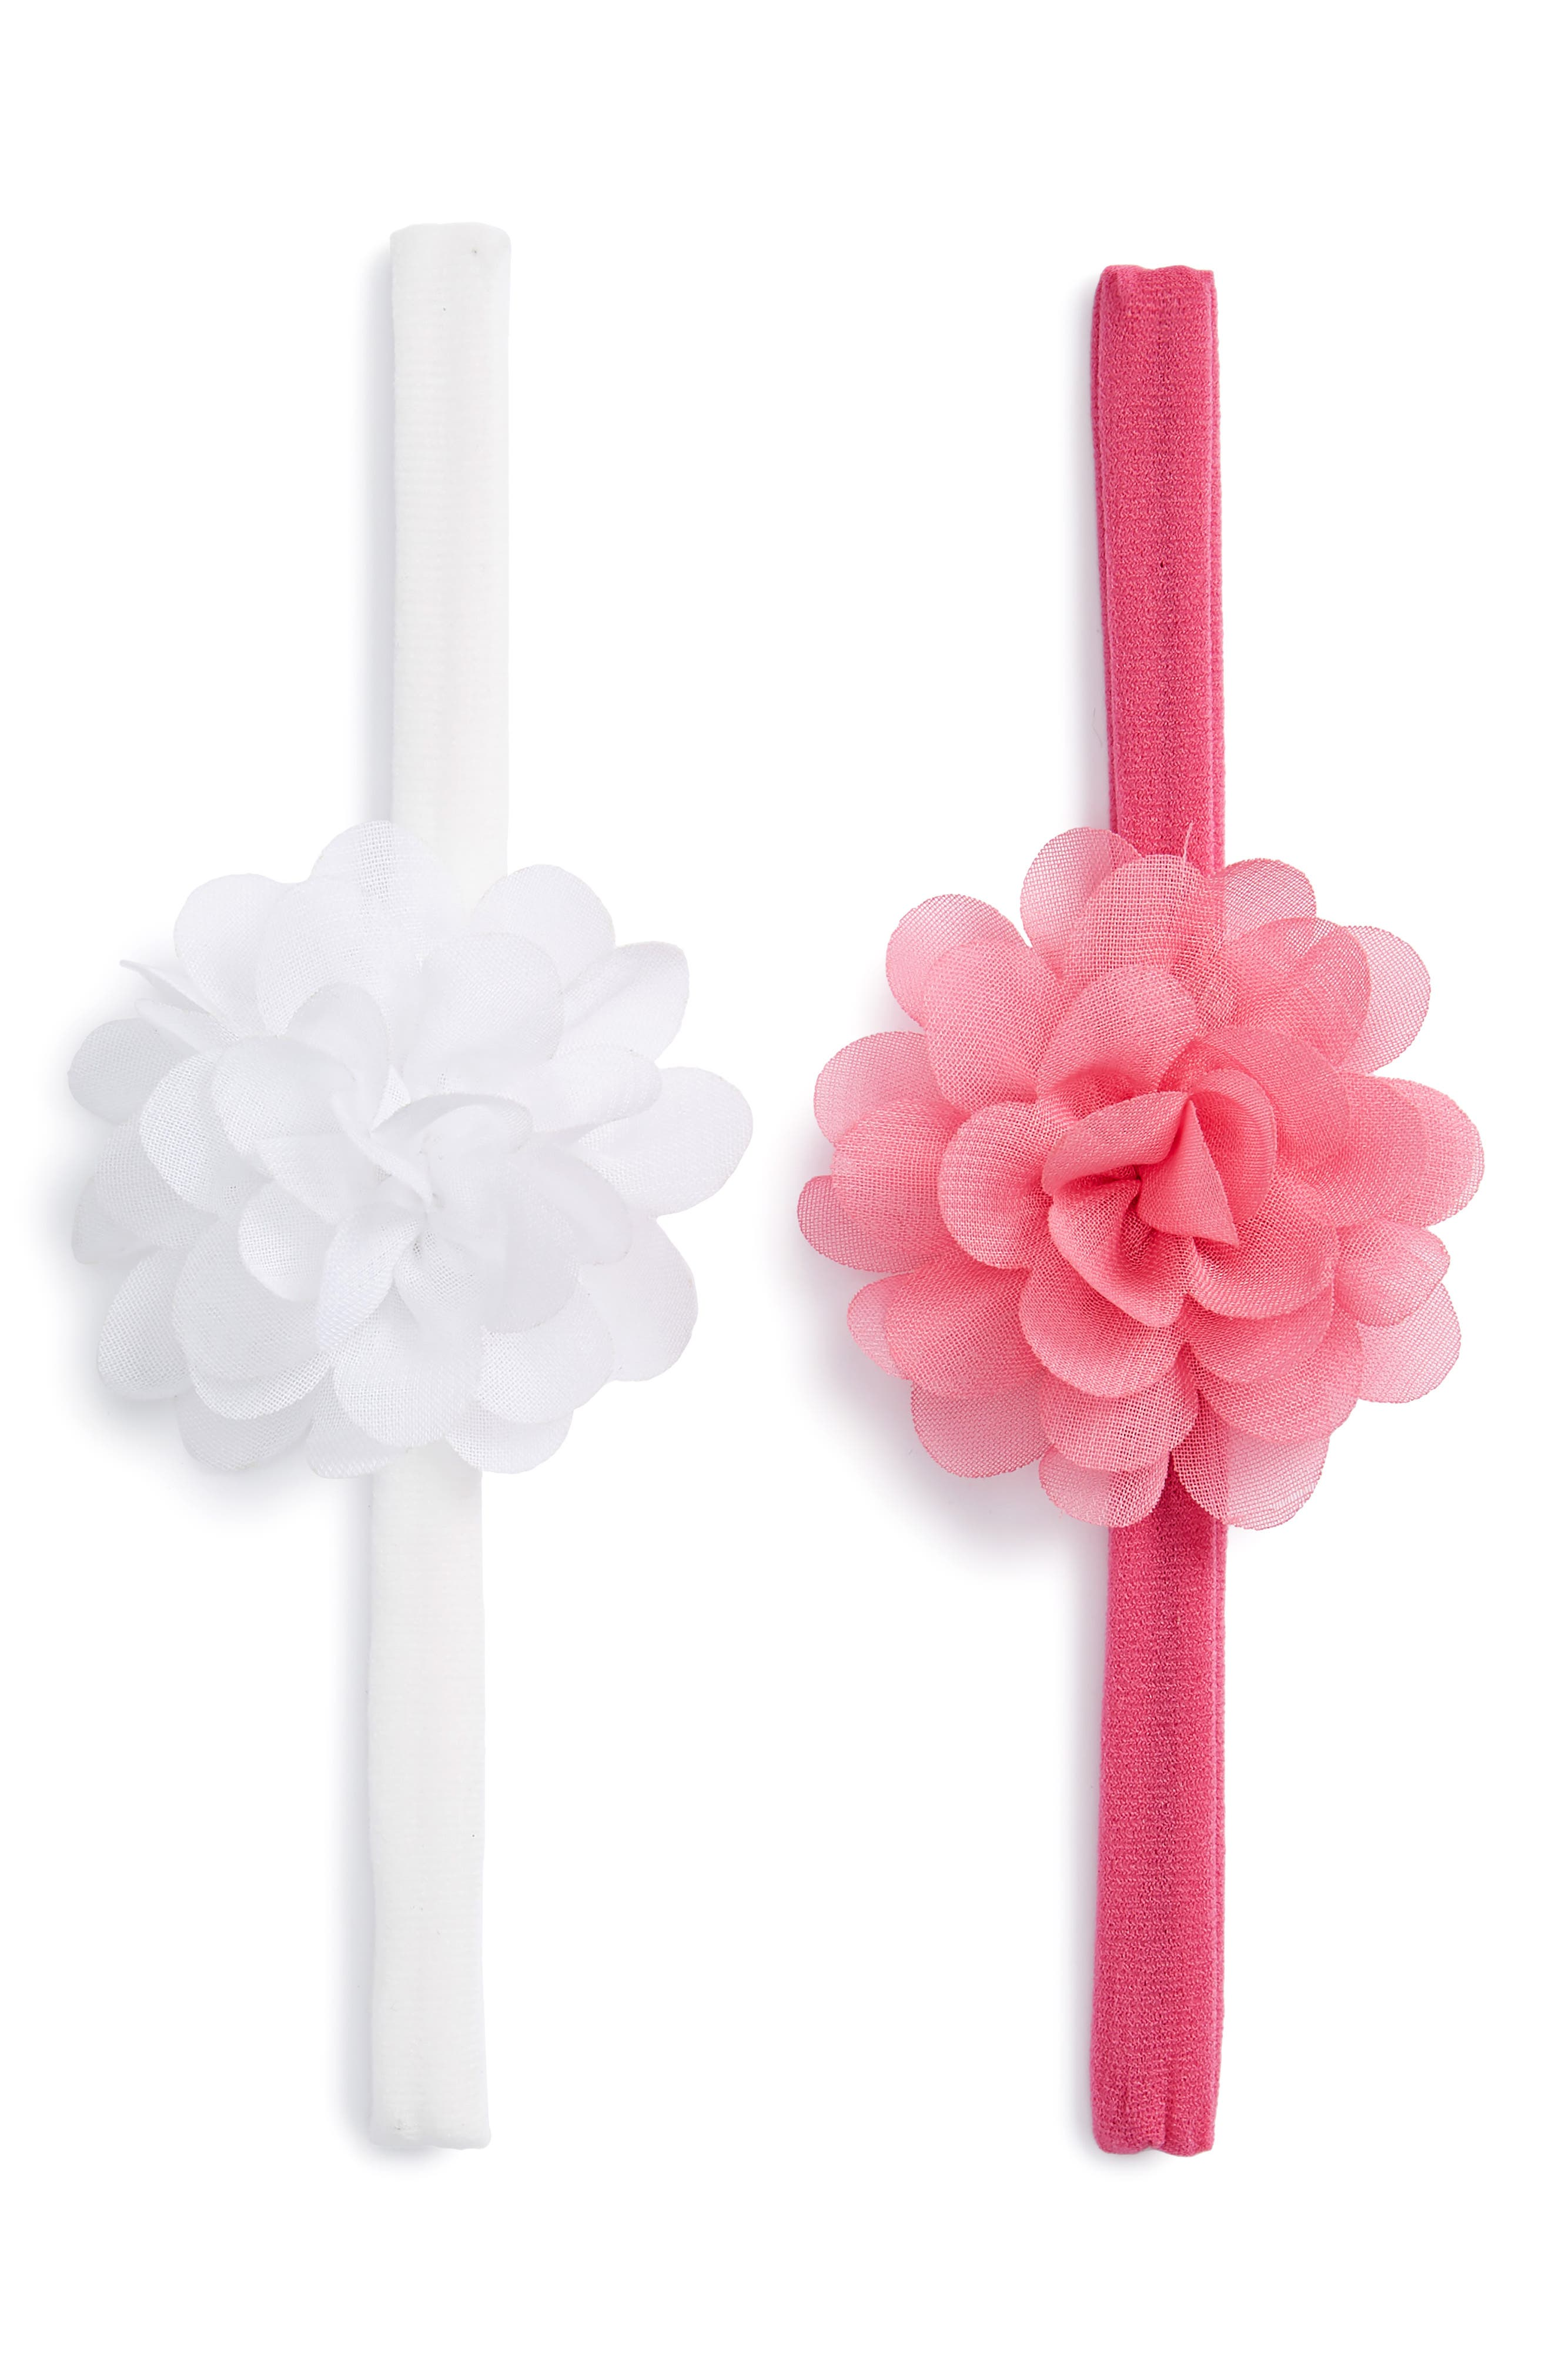 BABY BLING, Set of 2 Mini Flower Headbands, Main thumbnail 1, color, WHITE/ HOT PINK